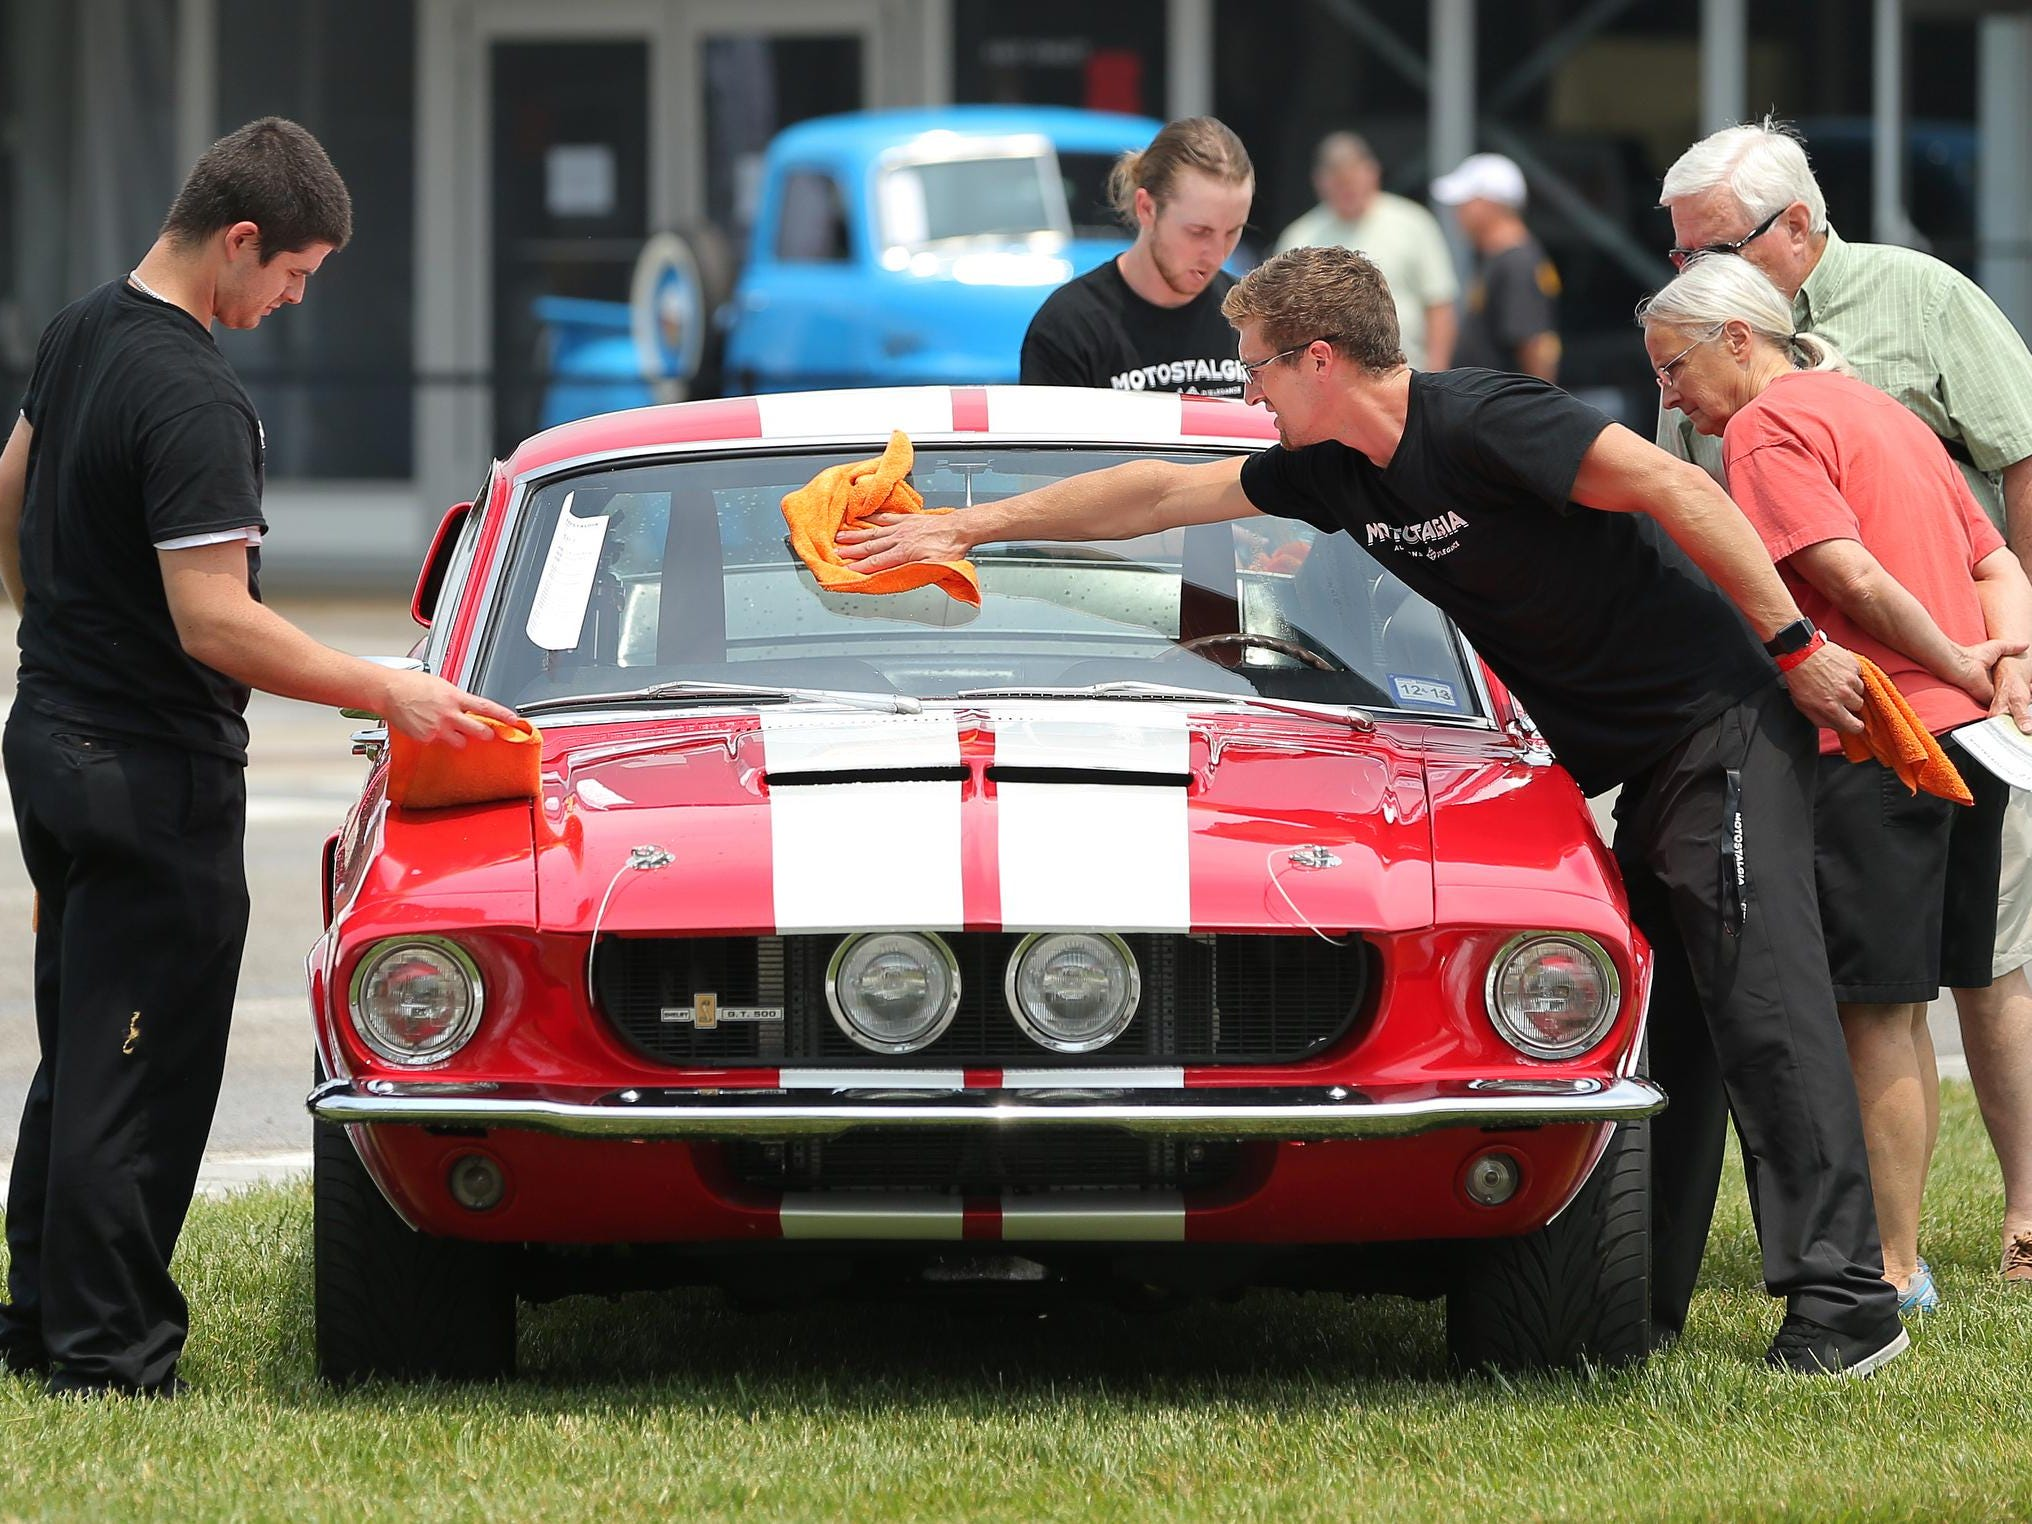 From left, owner Rick Vega, Tim Maggard and Addam Rodine with Jimmy Buffet's Auto Detailing out of Indianapolis wiped rainwater from a storm off of a 1968 Ford Mustang Fastback Shelby Tribute car. They were at the 2015 Brickyard Vintage Racing Invitational on Friday at Indianapolis Motor Speedway.